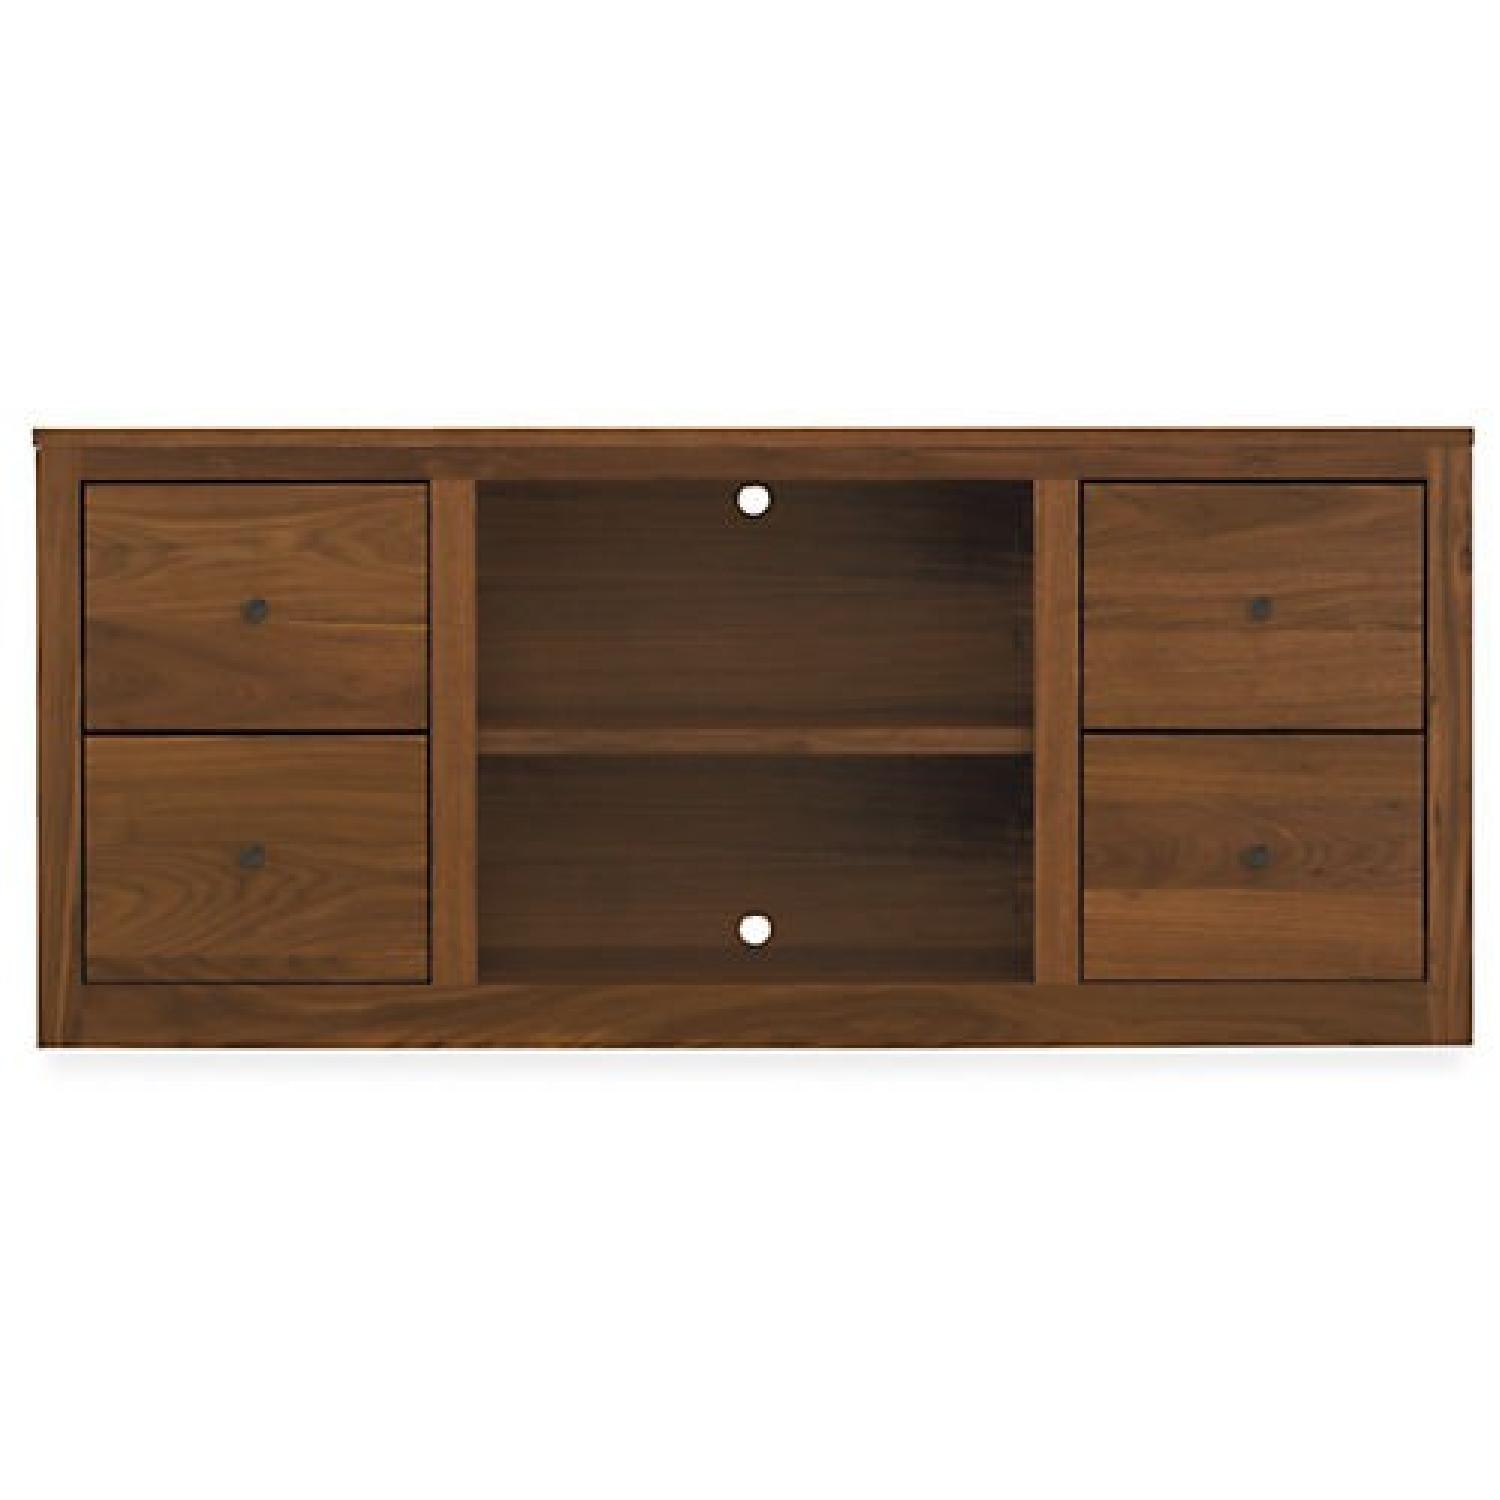 Room & Board Woodwind Media Cabinet in Walnut - image-4